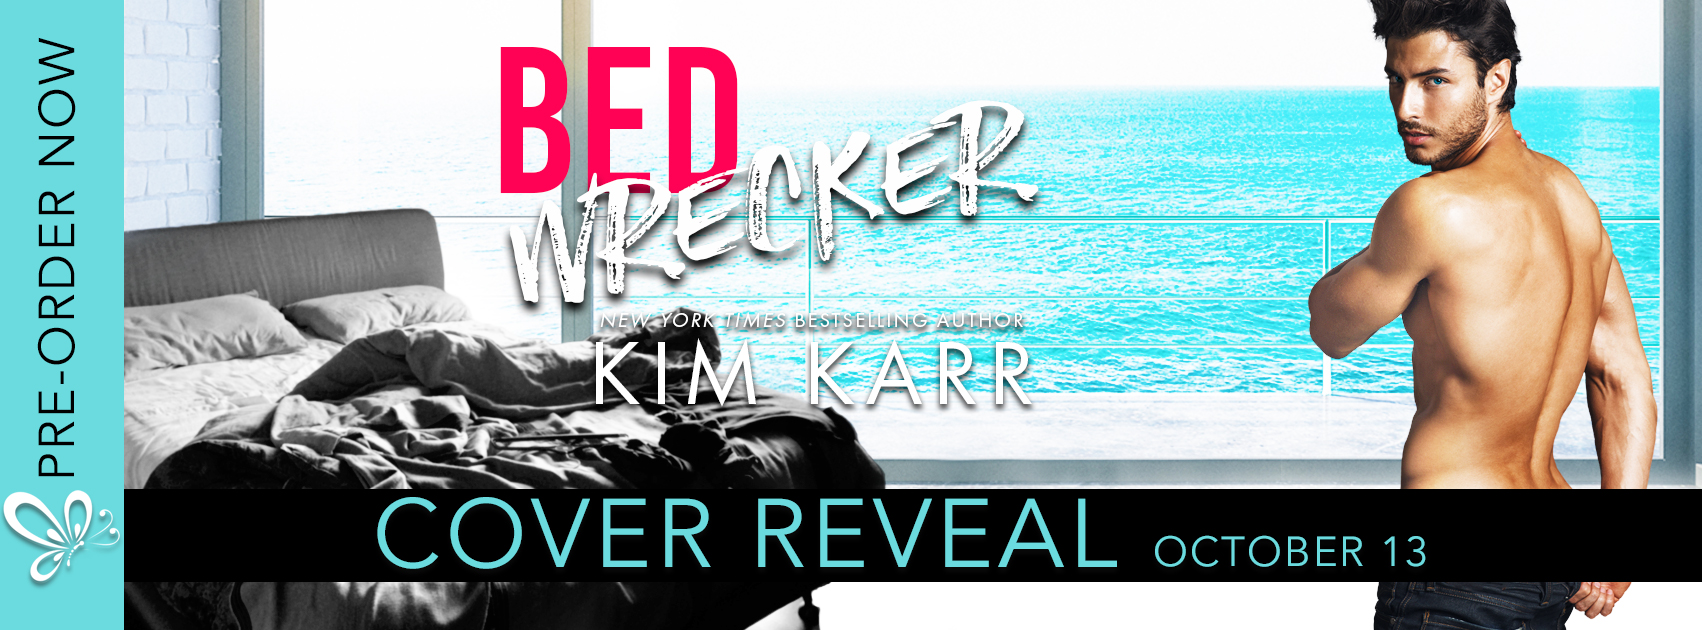 Bed Wrecker by Kim Karr #CoverReveal @authorkimkarr